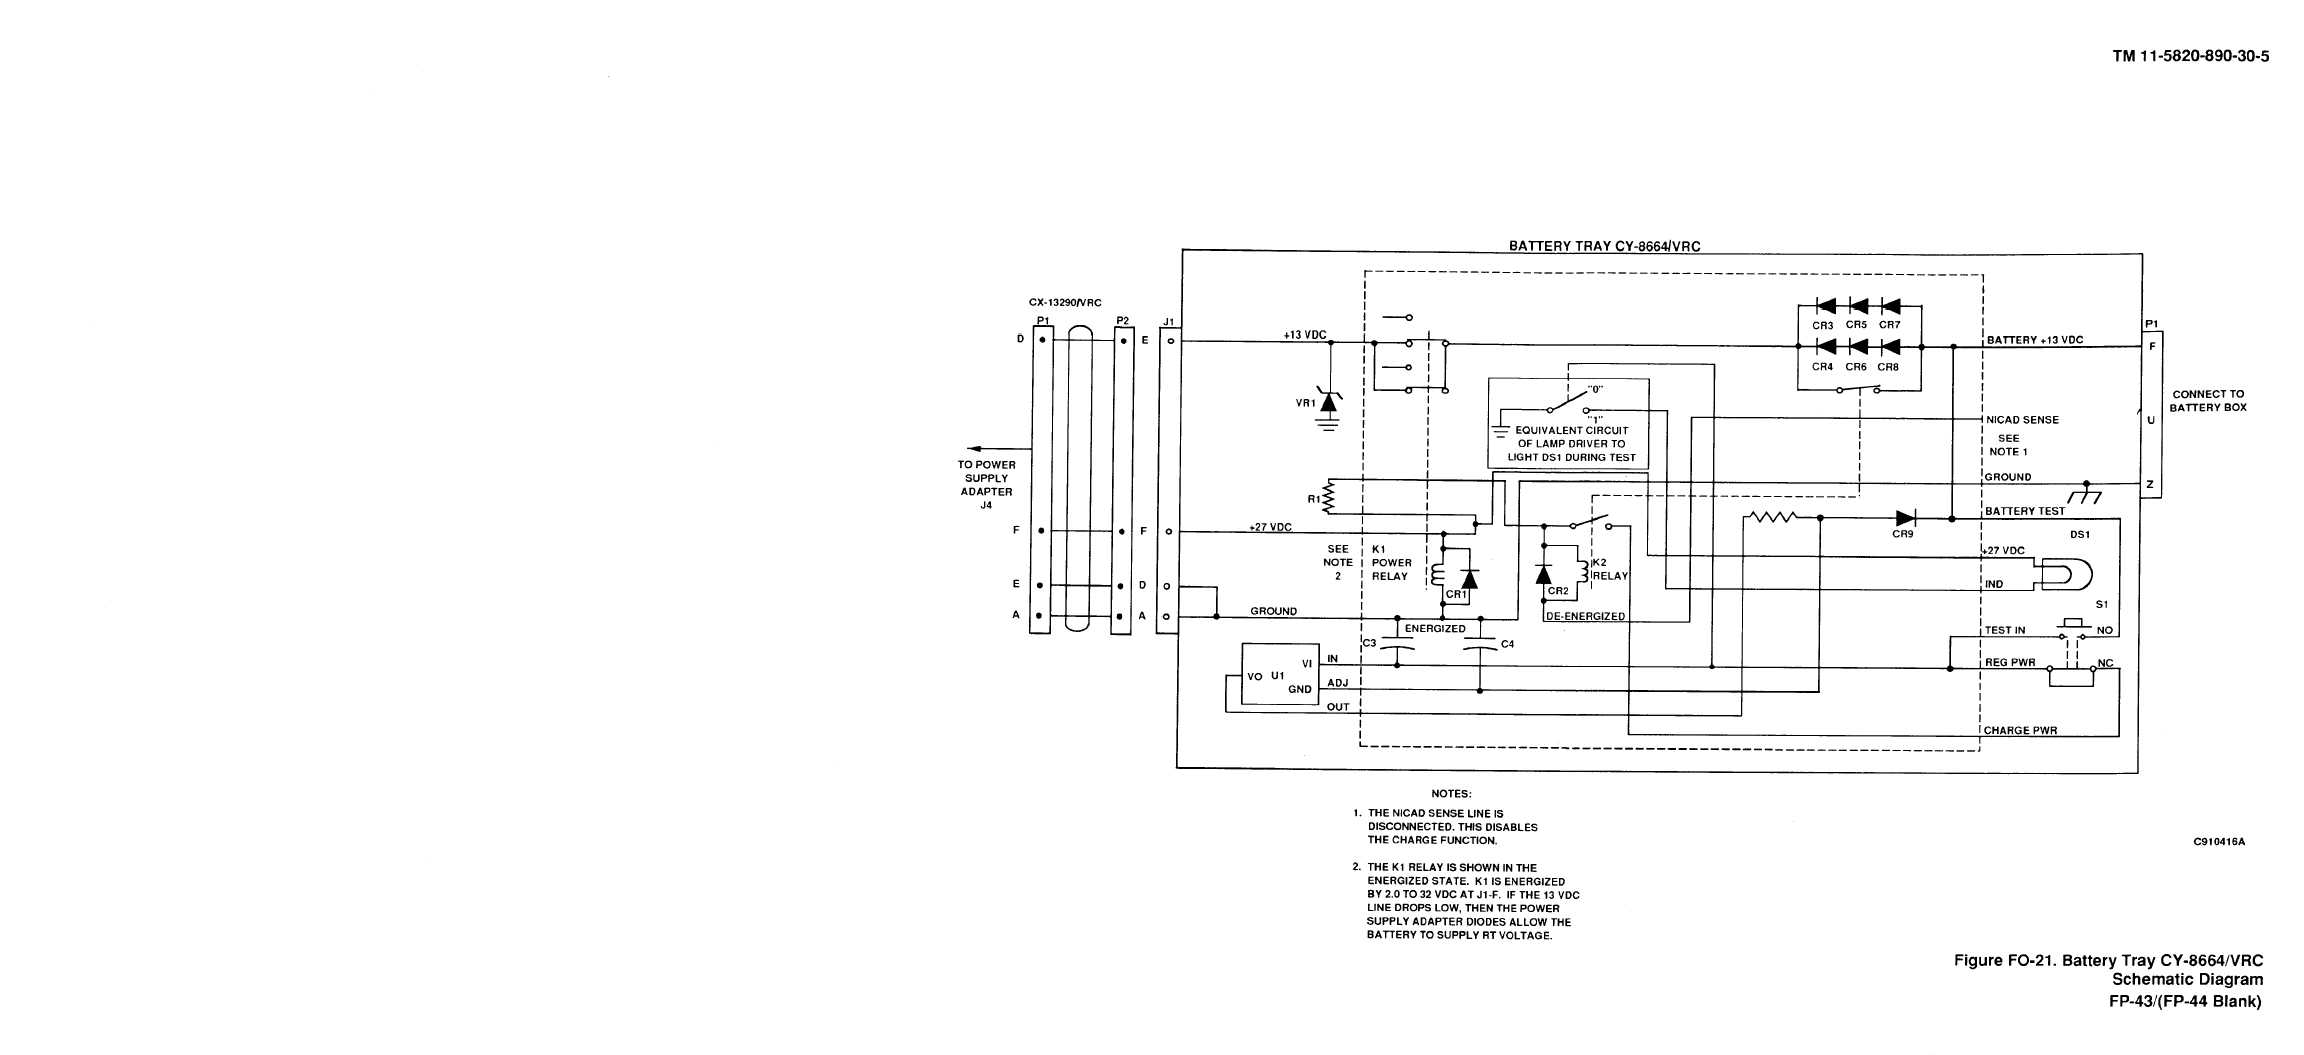 Simpson 260 Schematic Diagram Model Ask Answer Wiring Electrical Diagrams For A Multimeter Heathkit Receiver Gr 54 Get Free Image About 8p Repeatability Parts